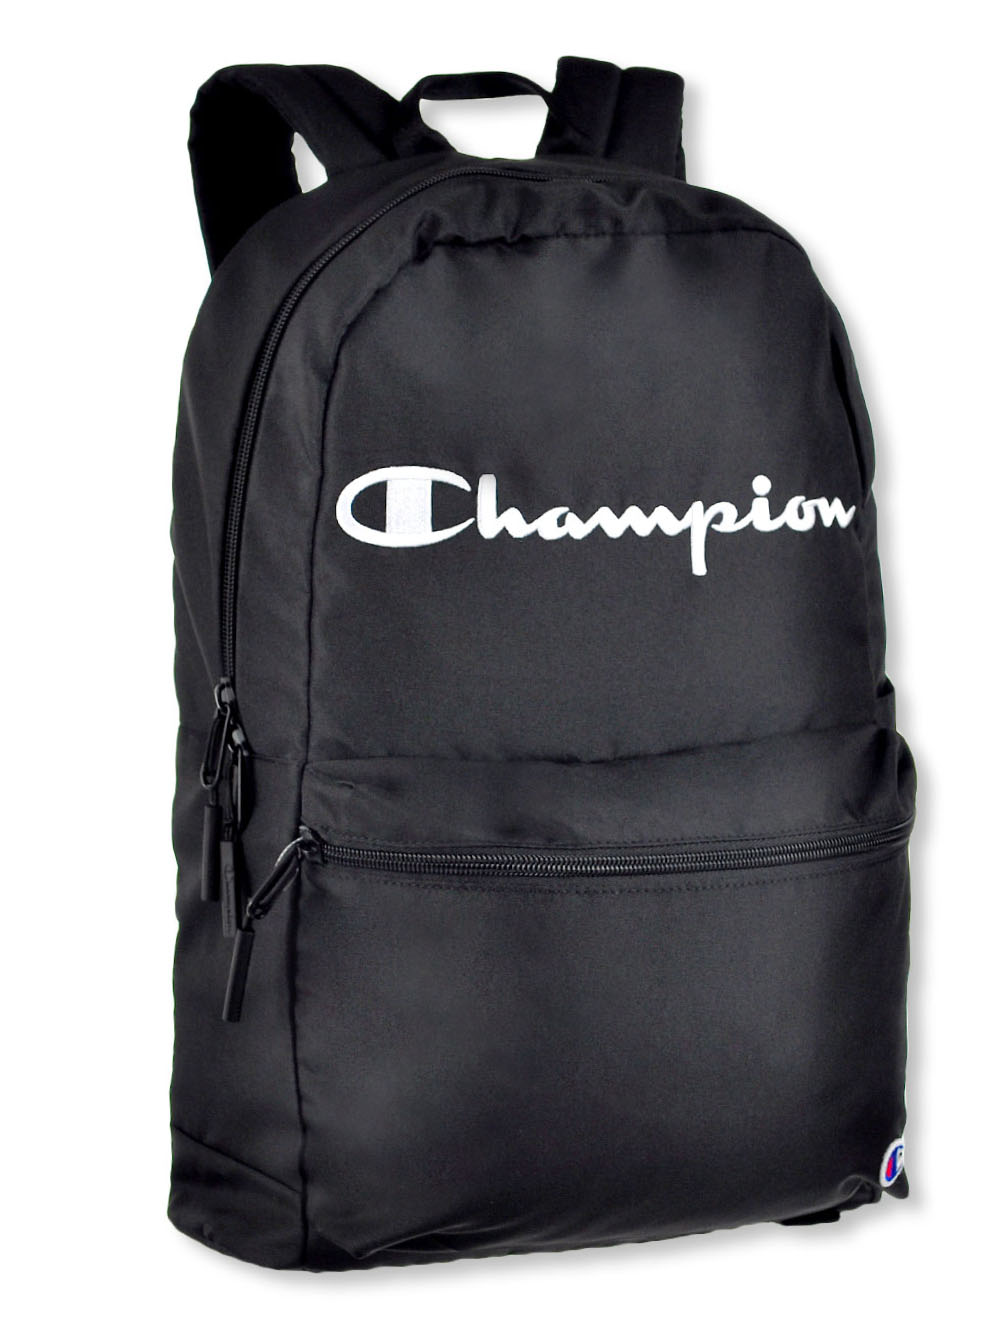 Boys Black and Multicolor Backpacks